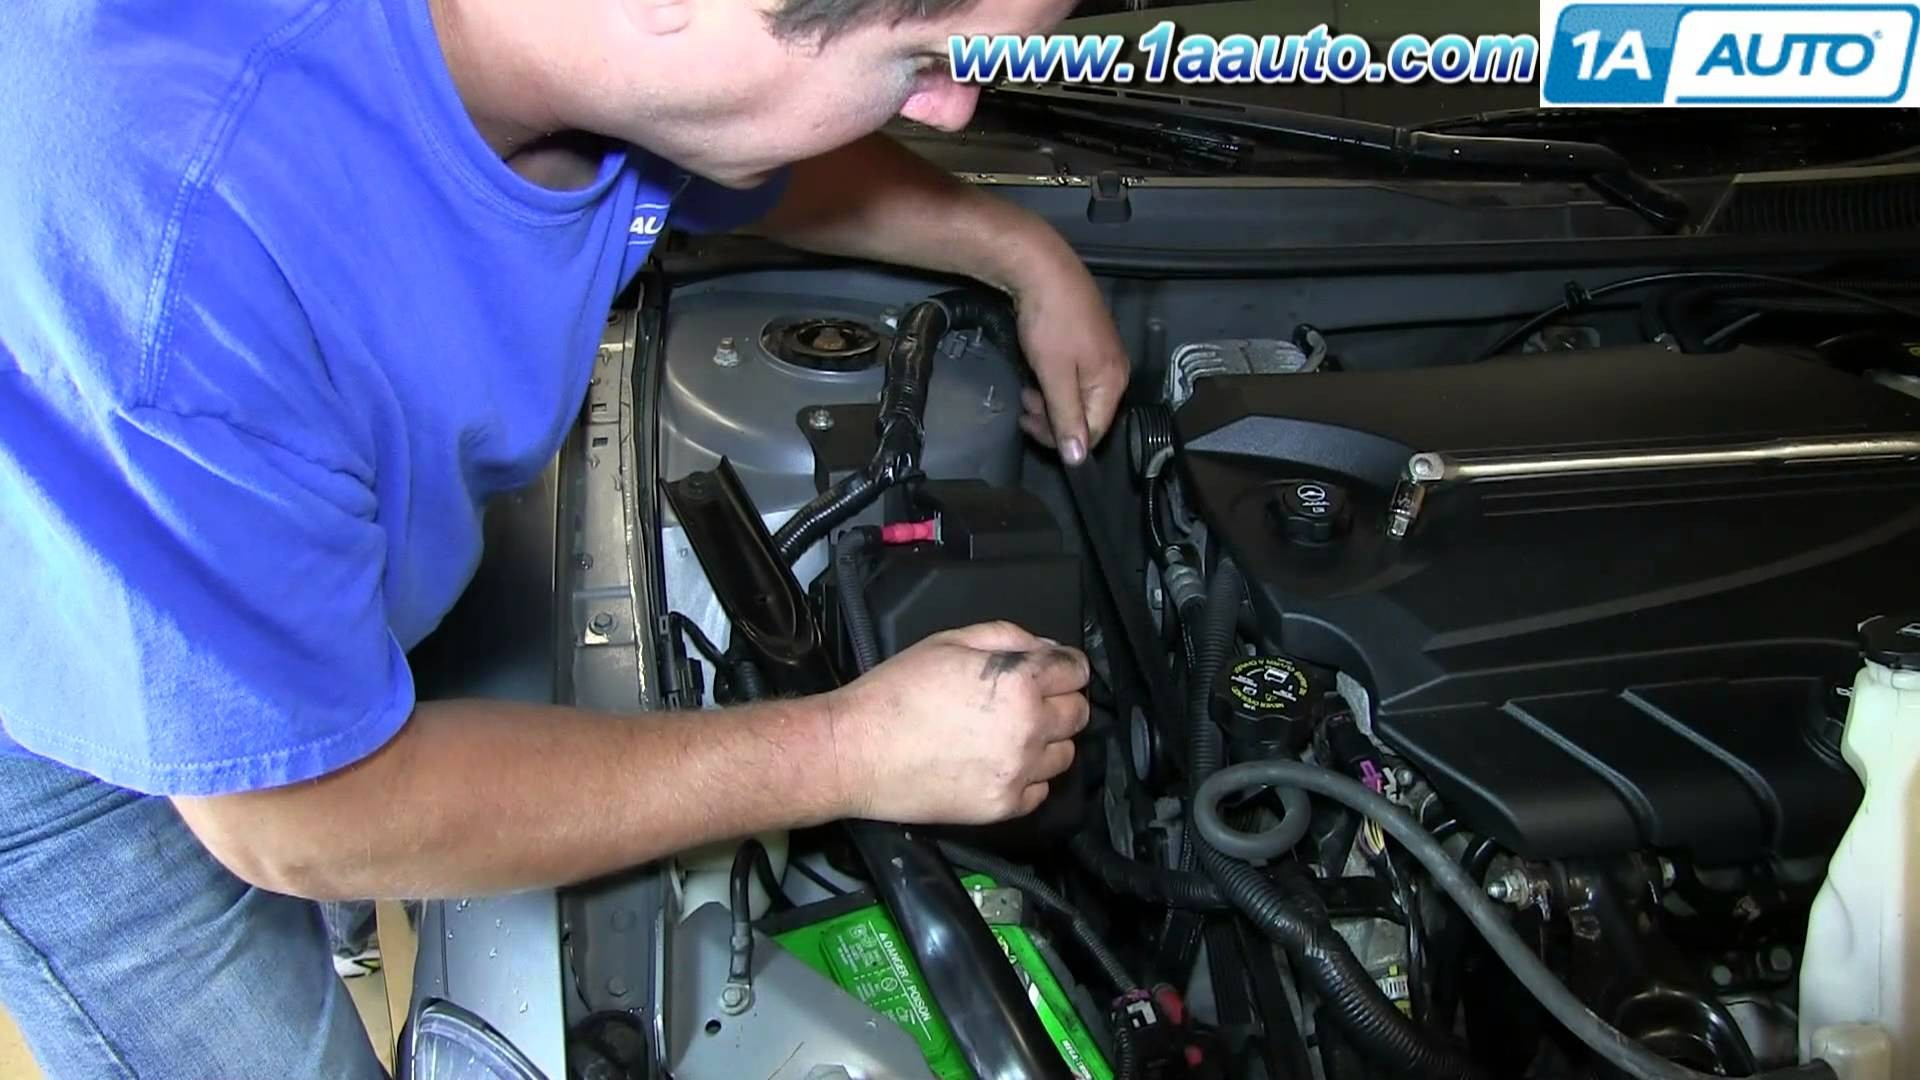 2007 Chevy Uplander Engine Diagram How to Install Replace Engine Serpentine Belt 2006 12 Chevy Impala Of 2007 Chevy Uplander Engine Diagram How to Replace Install Engine Ignition Coil 2006 12 Chevy Impala 3 5